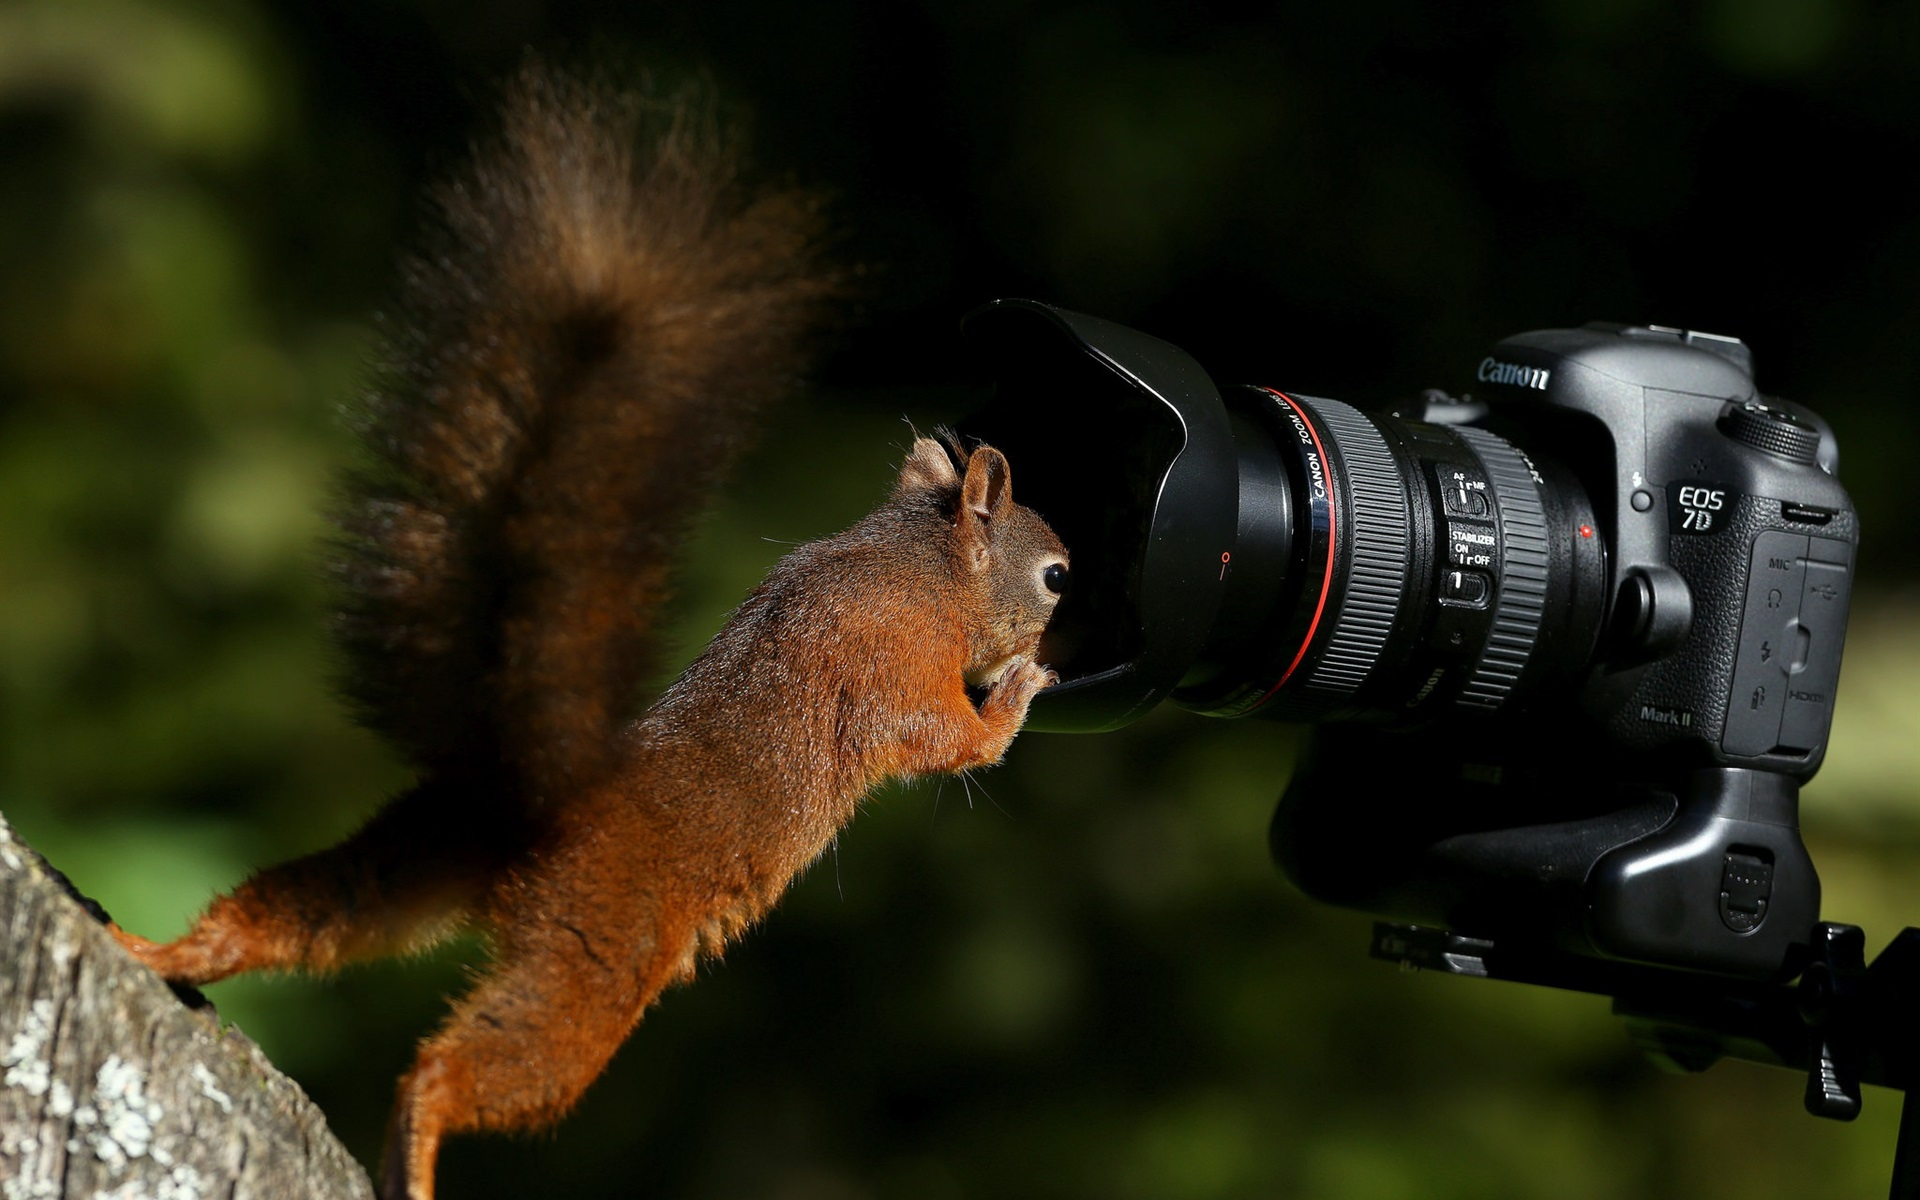 Wallpaper squirrel and eos 7d camera 1920x1200 hd picture - Flower wallpaper 7d ...